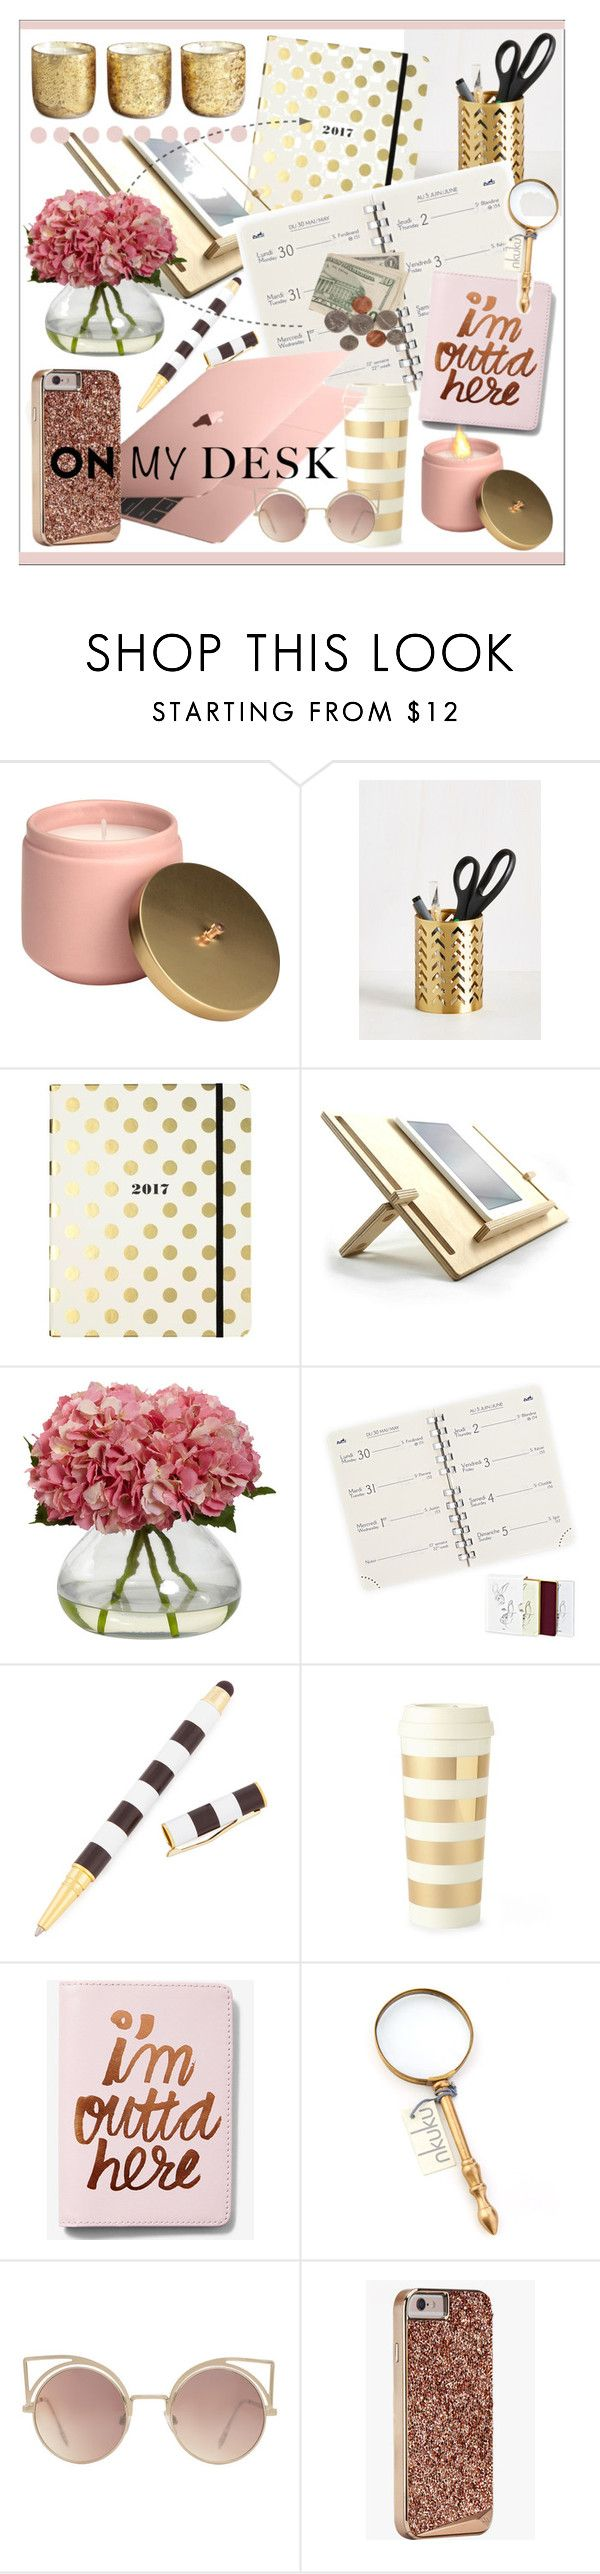 """What's On My Desk?"" by calamity-jane-always ❤ liked on Polyvore featuring interior, interiors, interior design, home, home decor, interior decorating, Kate Spade, Henri Bendel, Express and NKUKU"